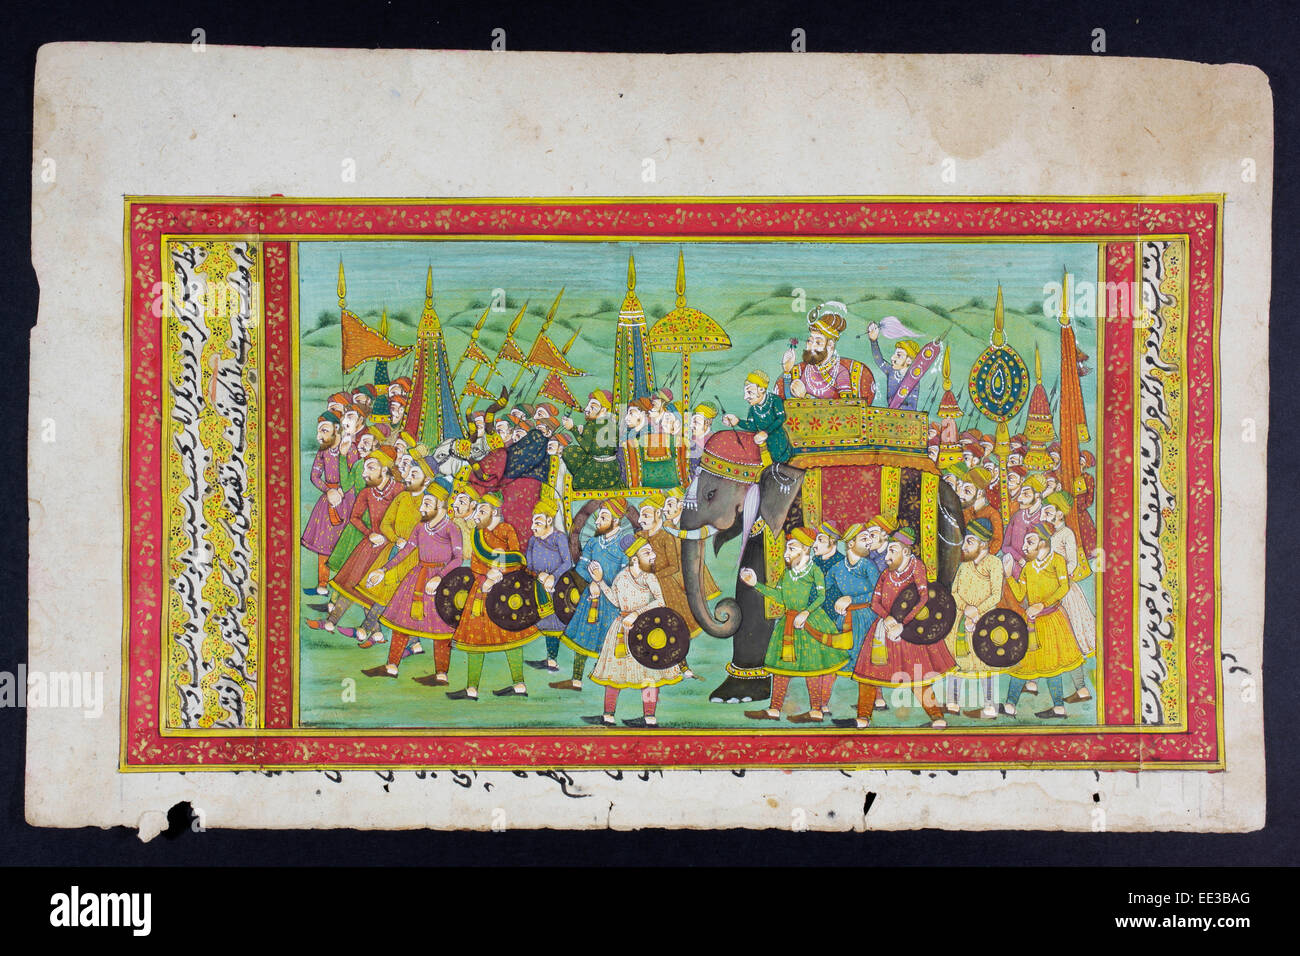 Rajasthani miniature painting from Rajasthan, India.  Probably late 19th century or early 20th century. - Stock Image